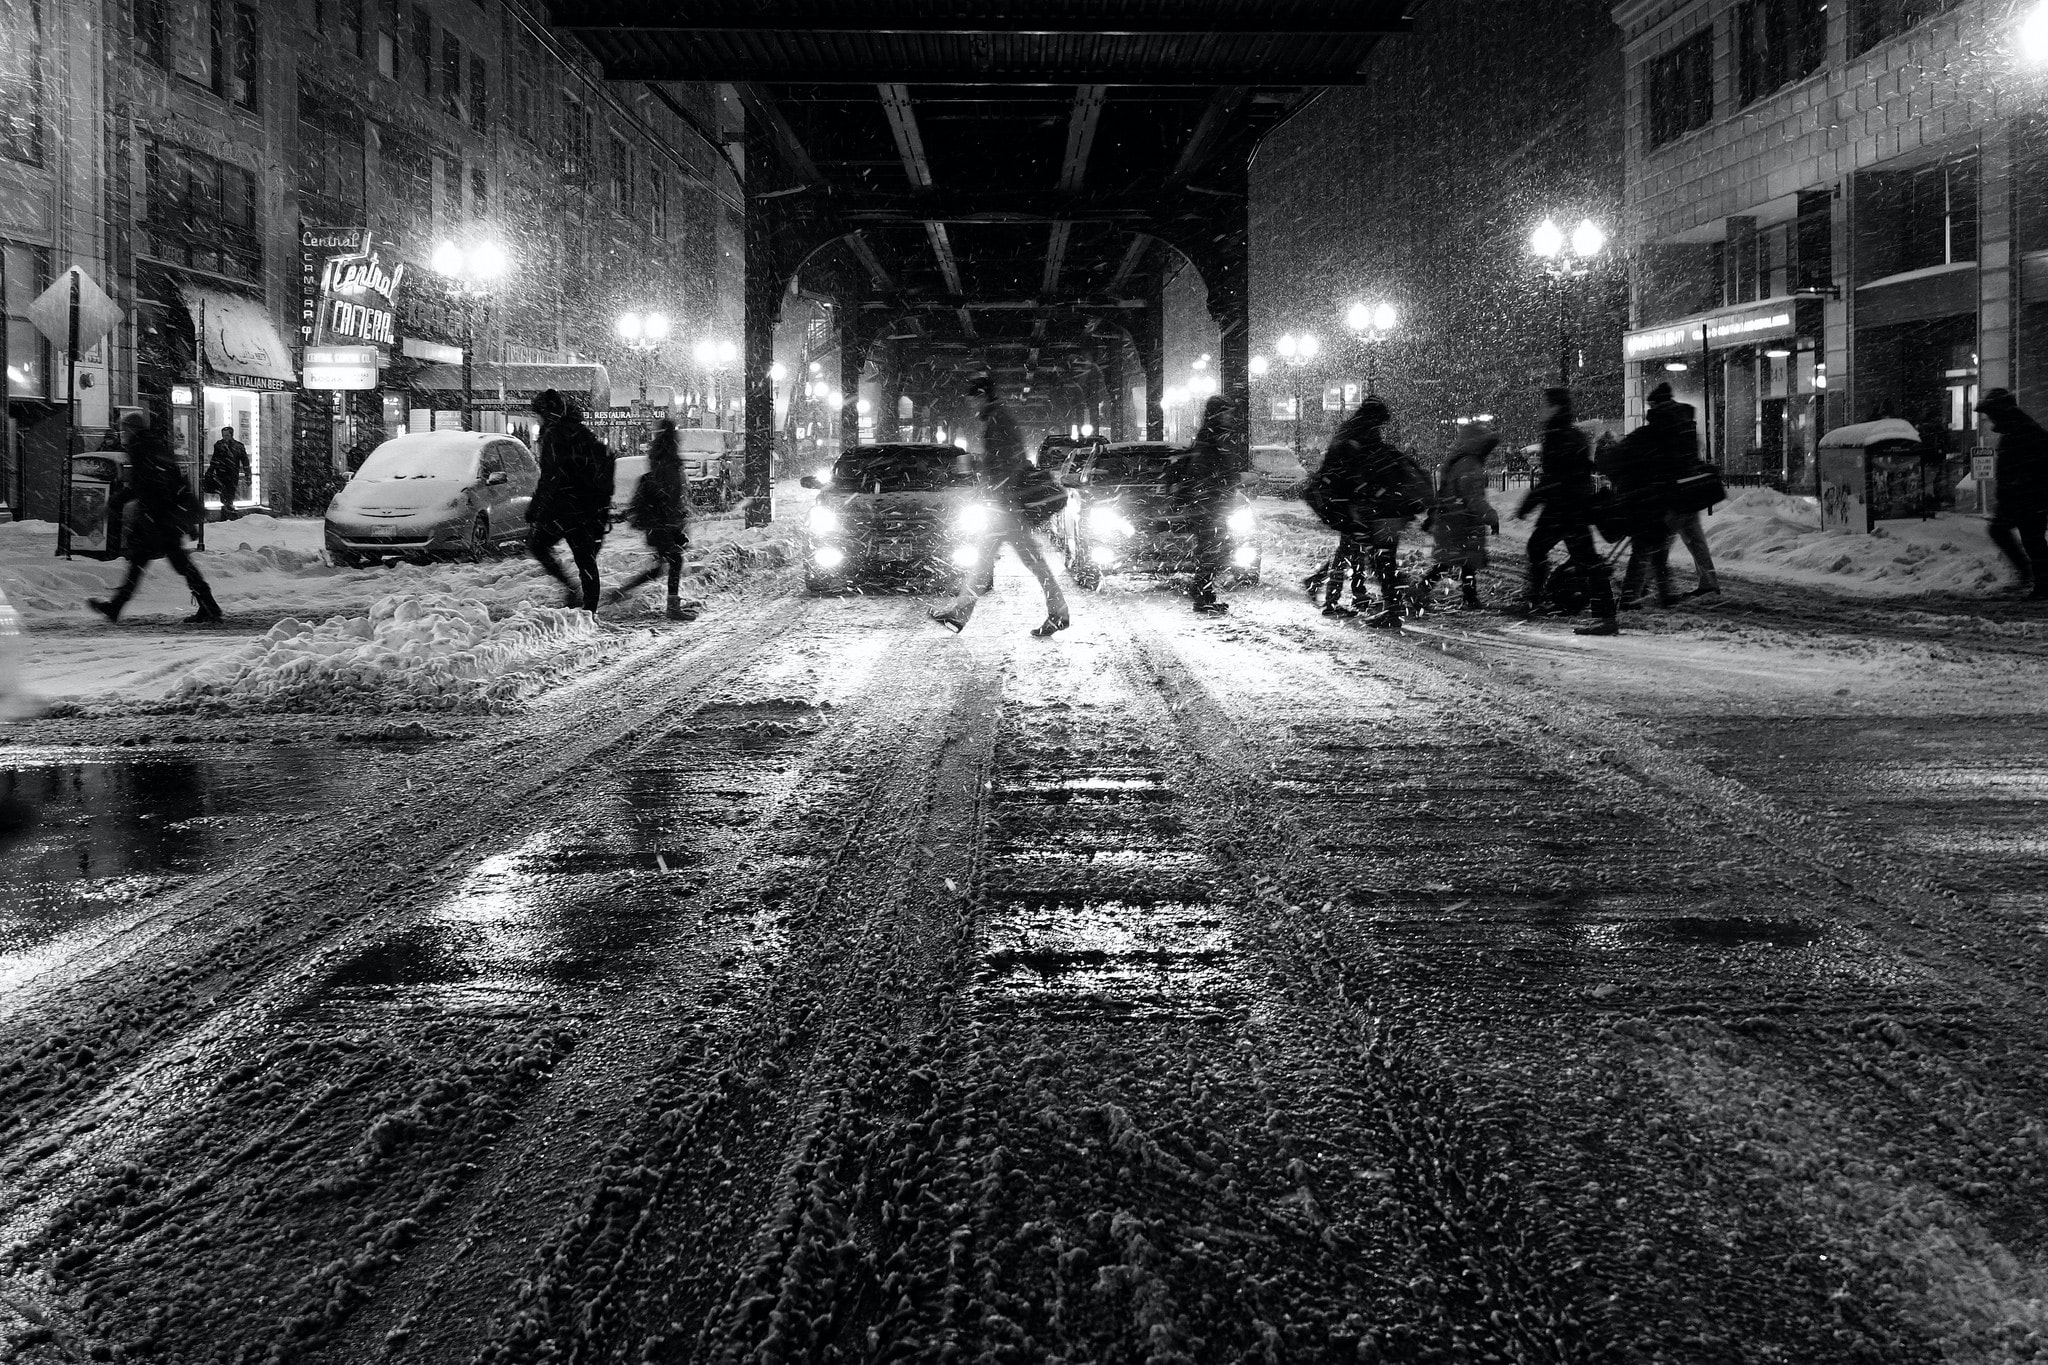 Black and white shot of people walking in city street slush with snow and cars